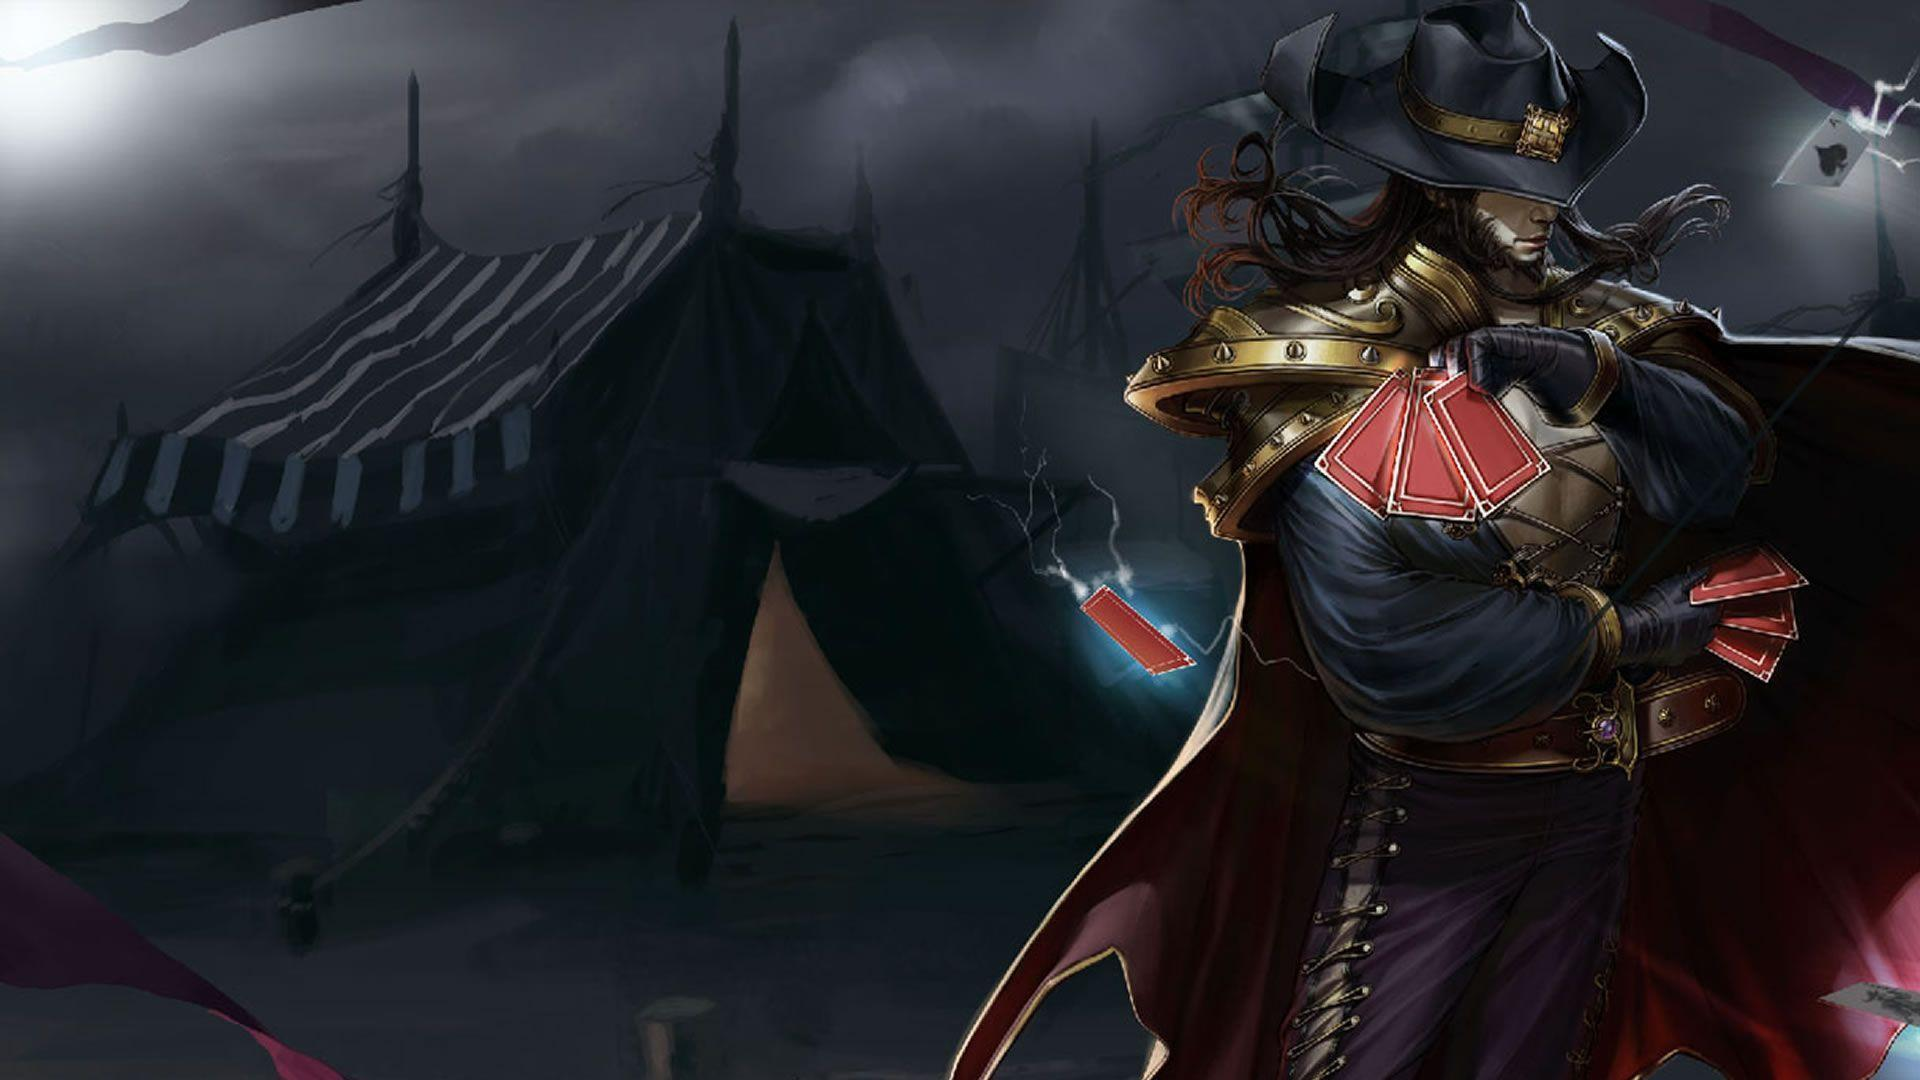 Twisted Fate Wallpapers 1920x1080